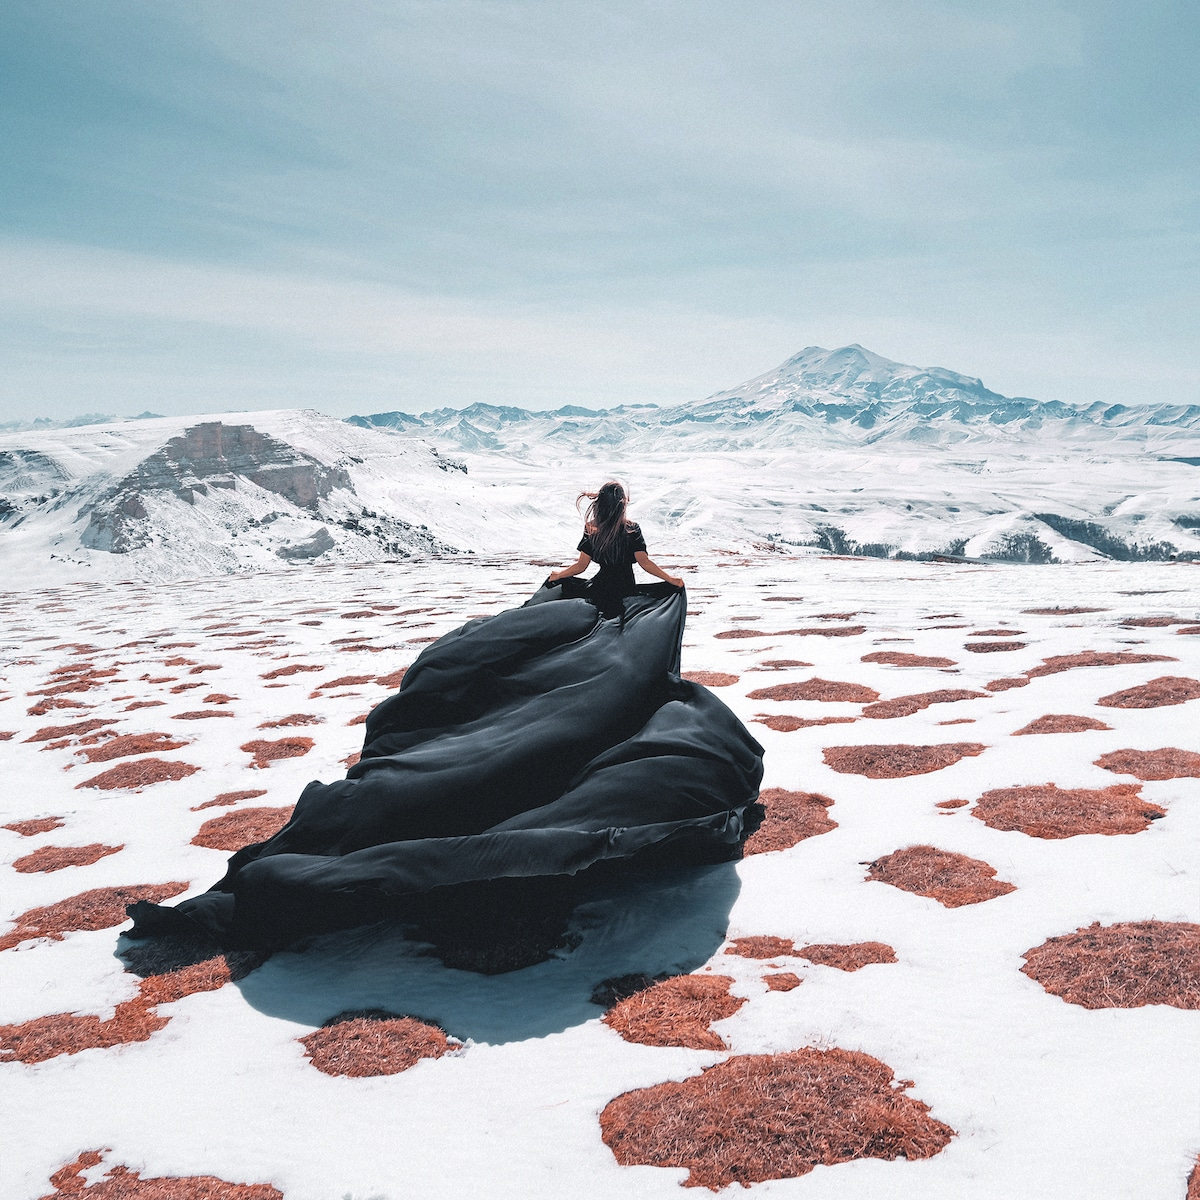 Fashion Photo in Dramatic Landscape